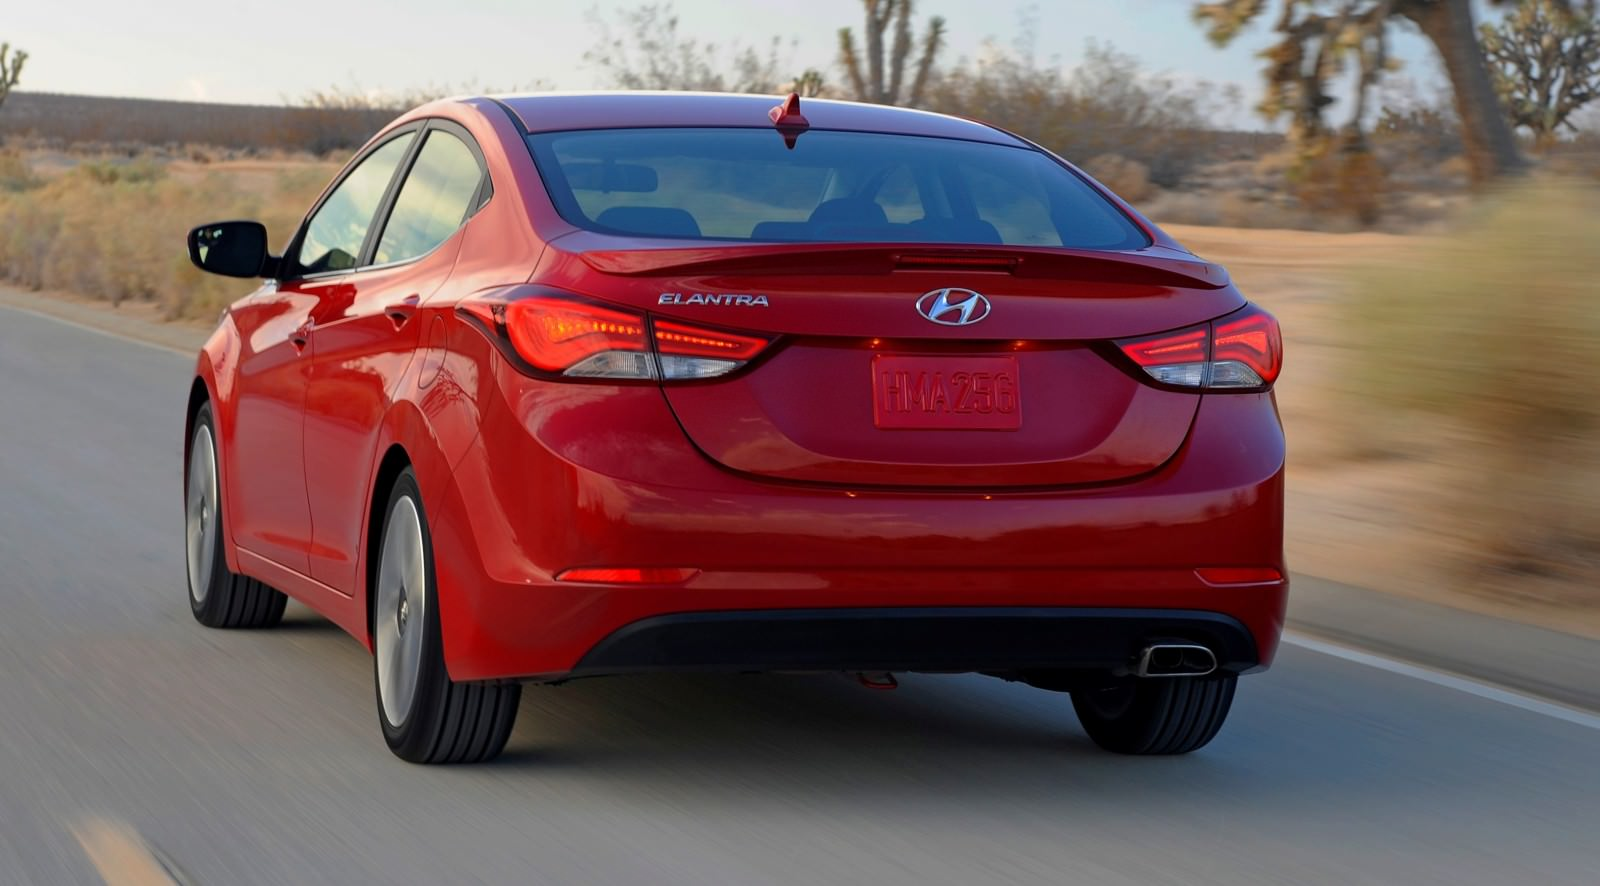 2015 Hyundai Elantra Sedan Brings Classy LED and Tech Updates  21